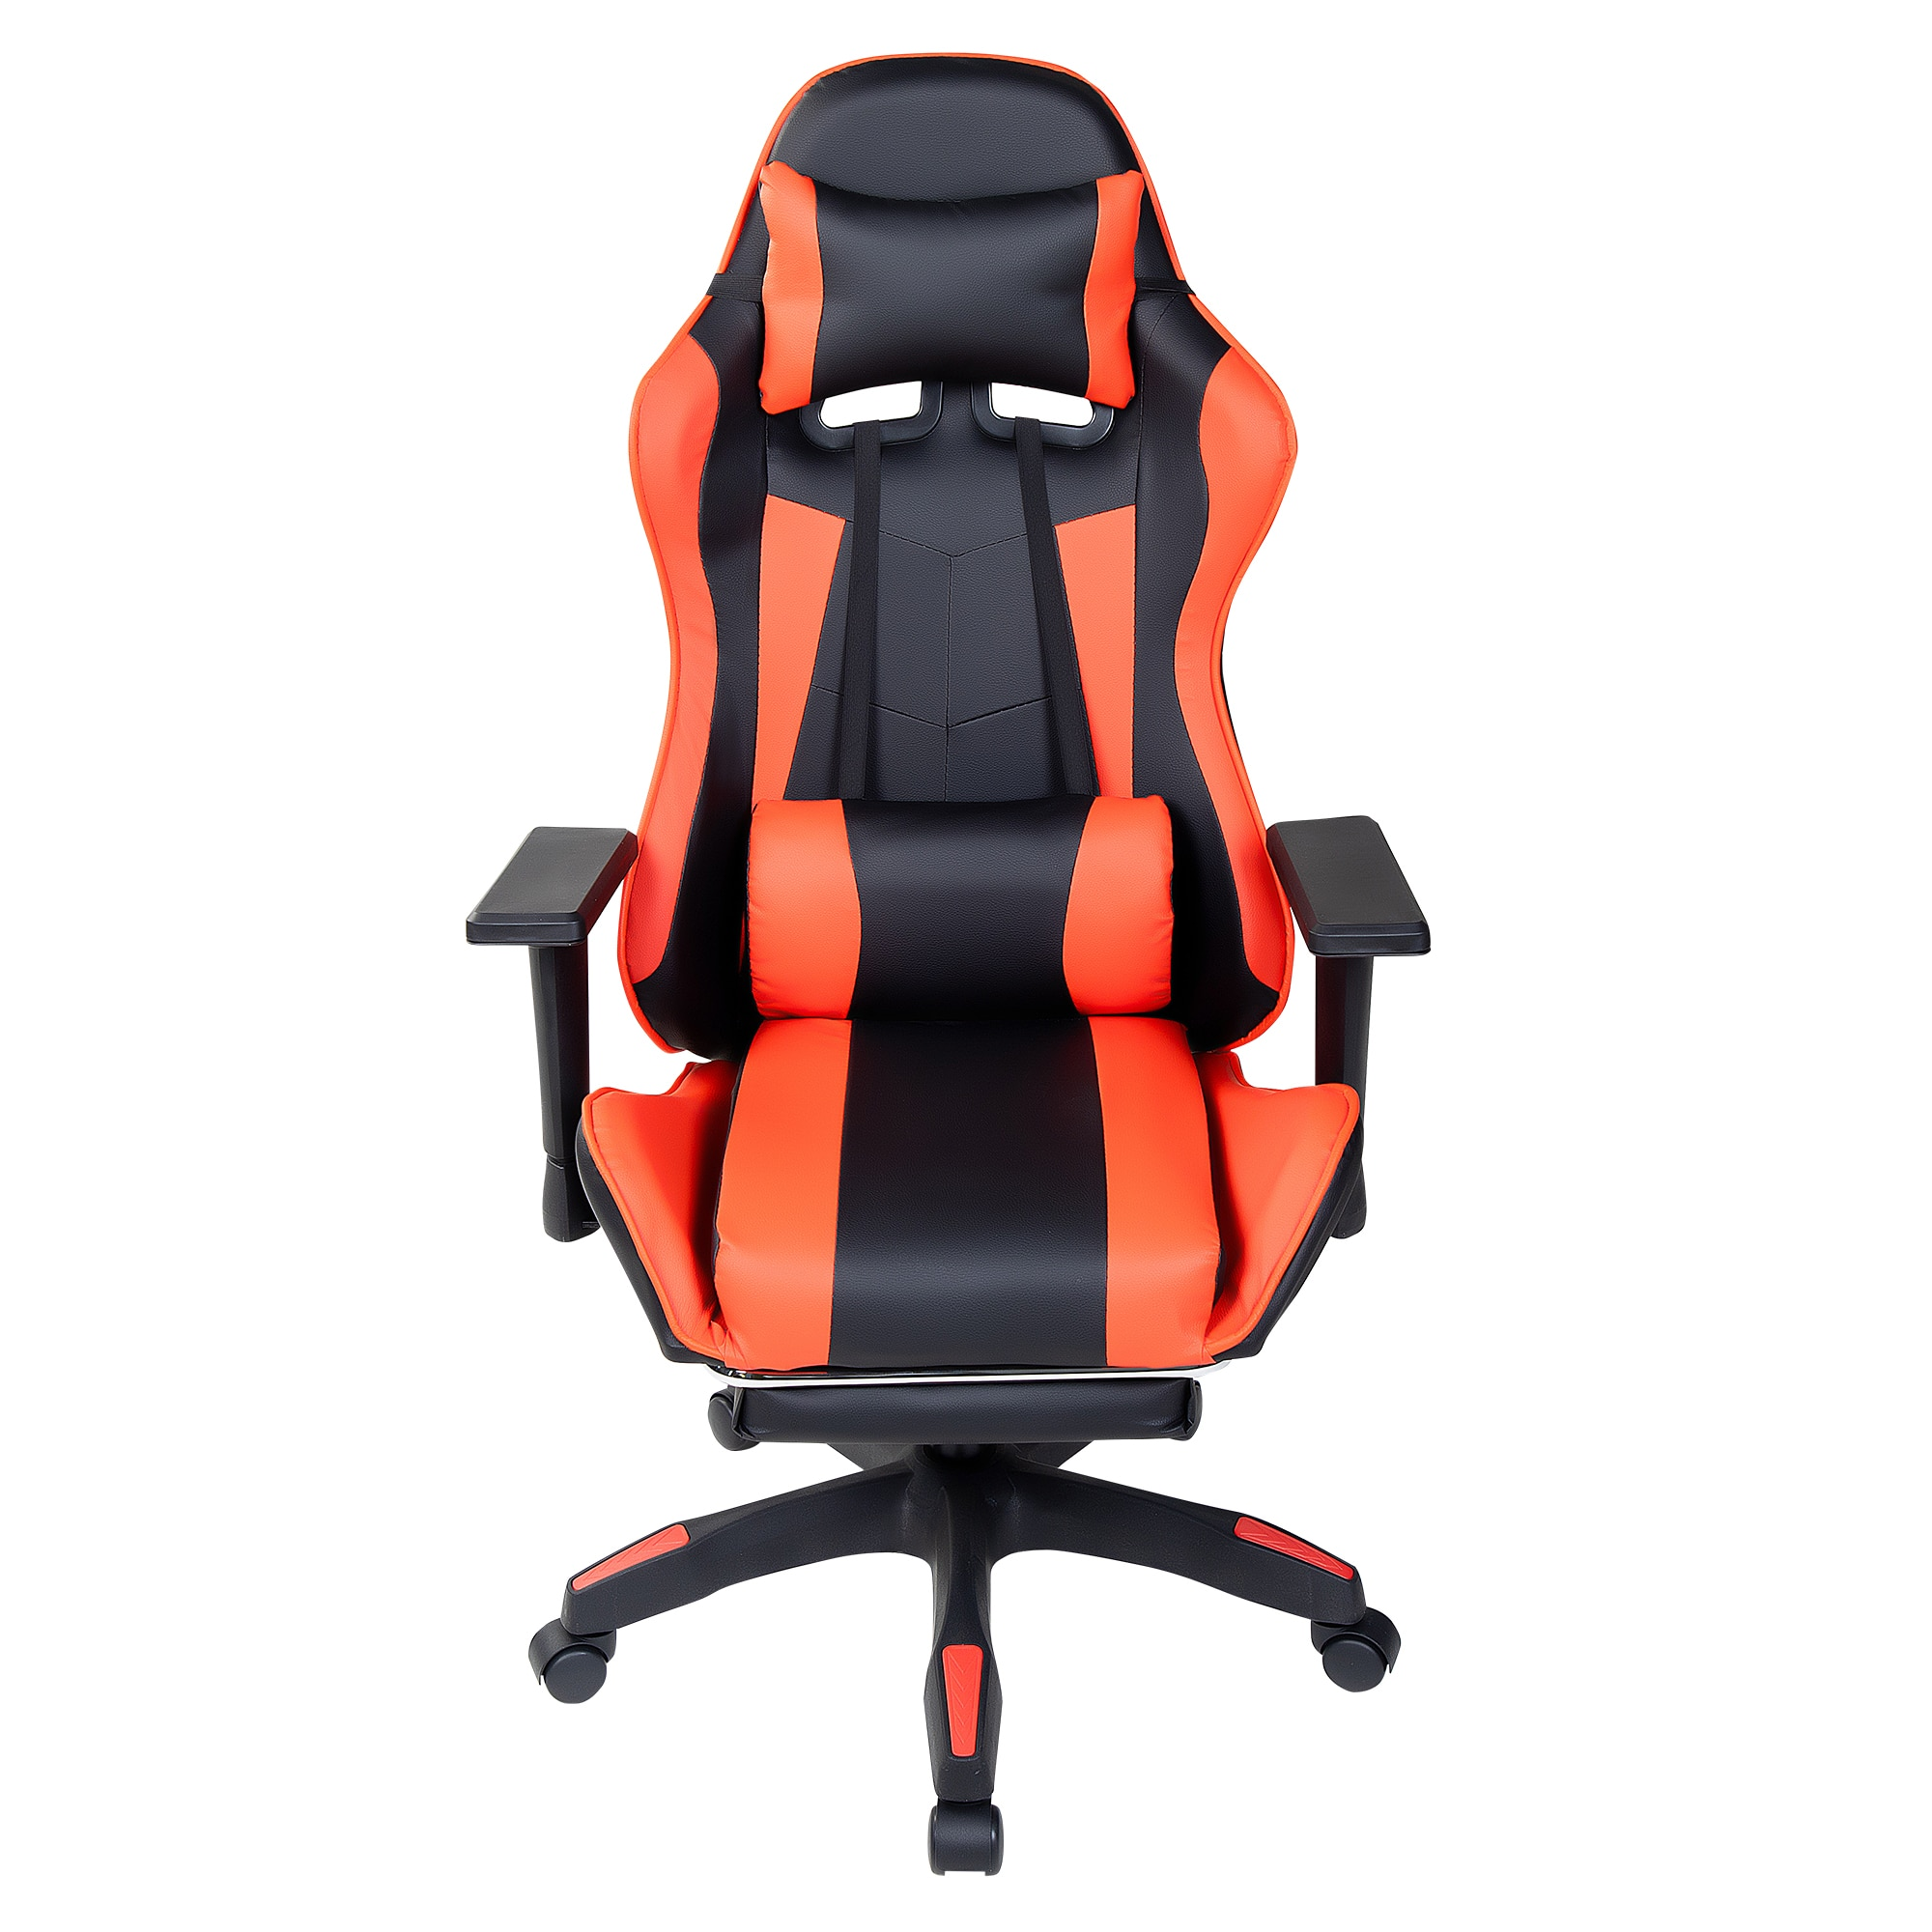 H465562bfe7a04467af255cdf140ab456d - Computer Gaming Chair Safe And Durable Office Chair Ergonomic Leather Boss Chair Wcg Game Rotating Lift Chair High Back Chair